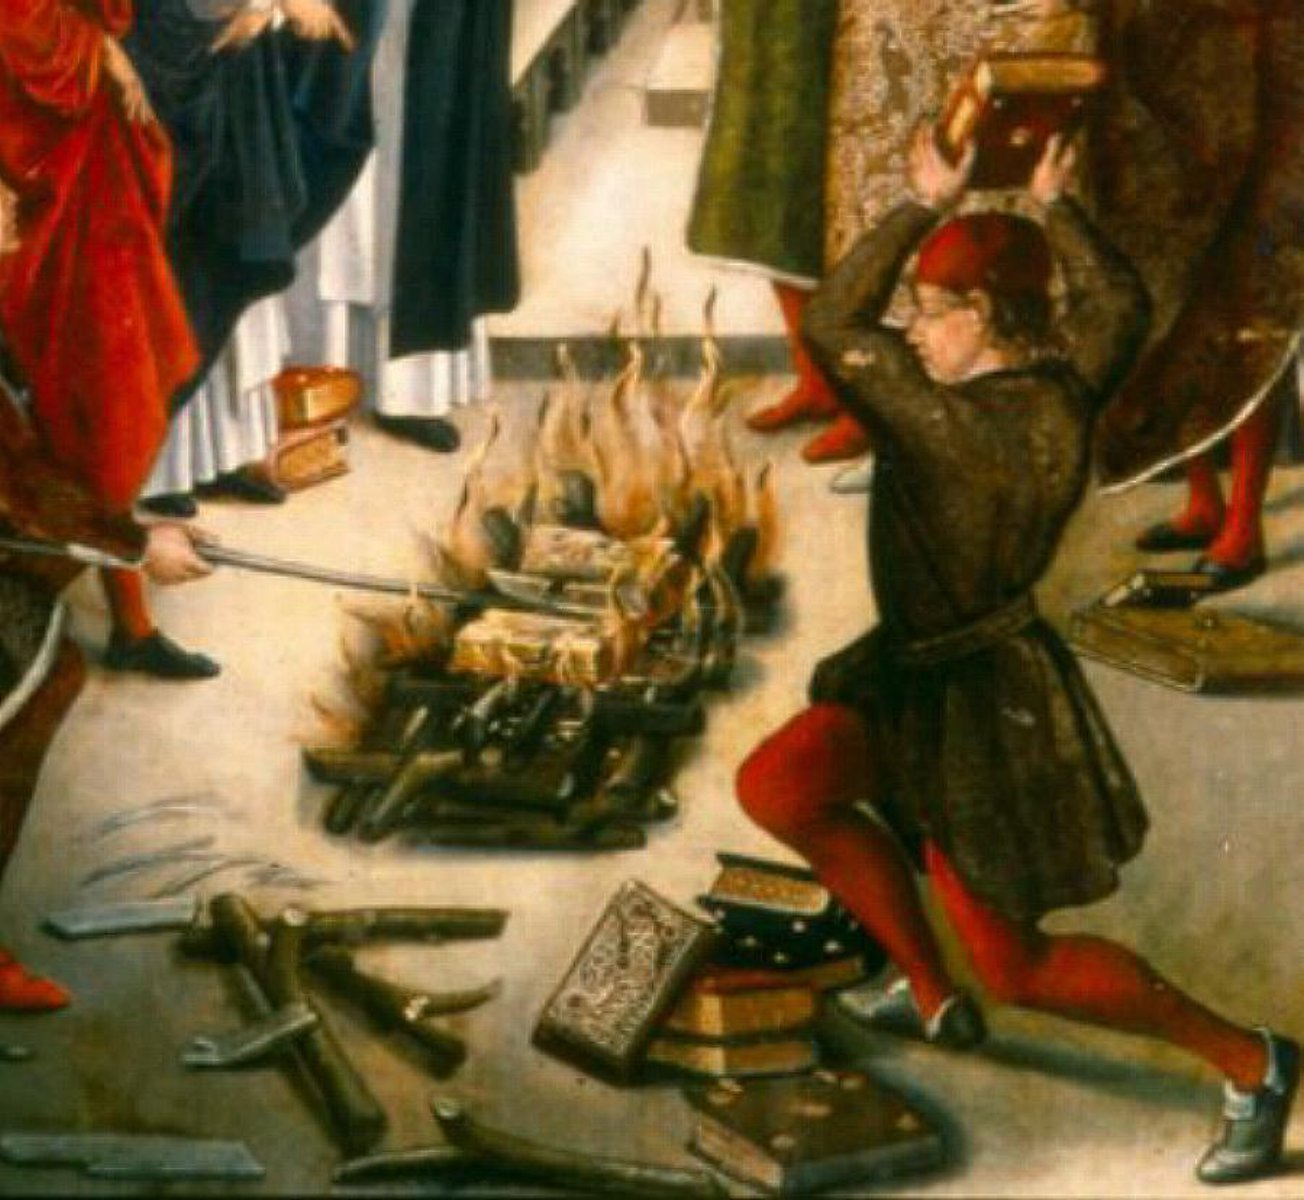 book-burning-christian.jpg